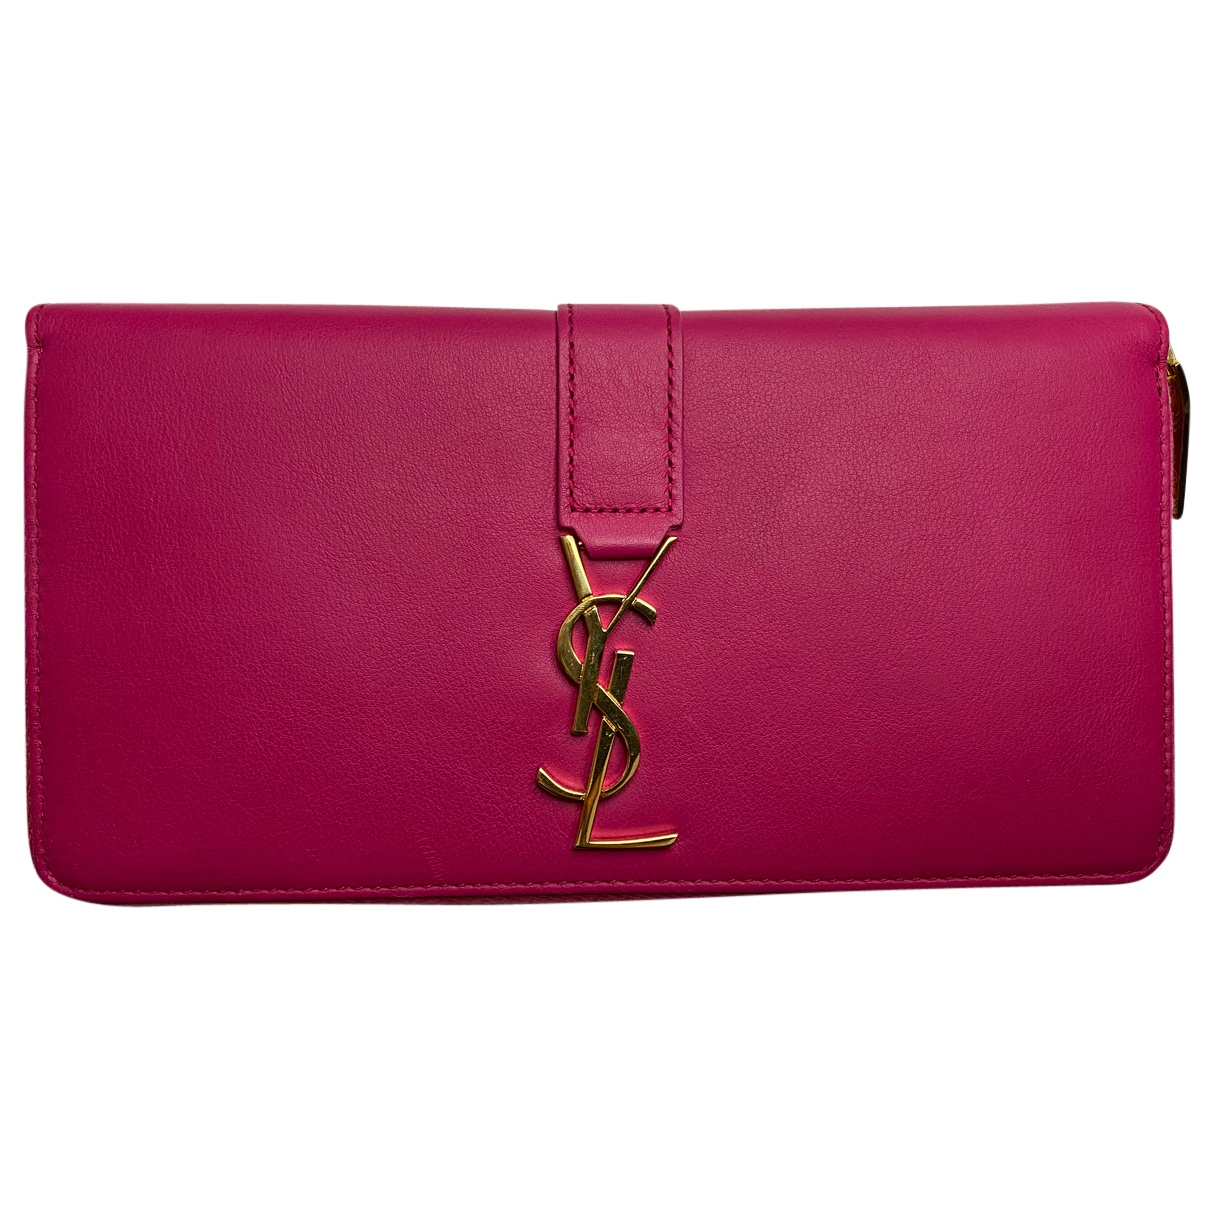 Saint Laurent Ysl line Pink Leather wallet for Women N